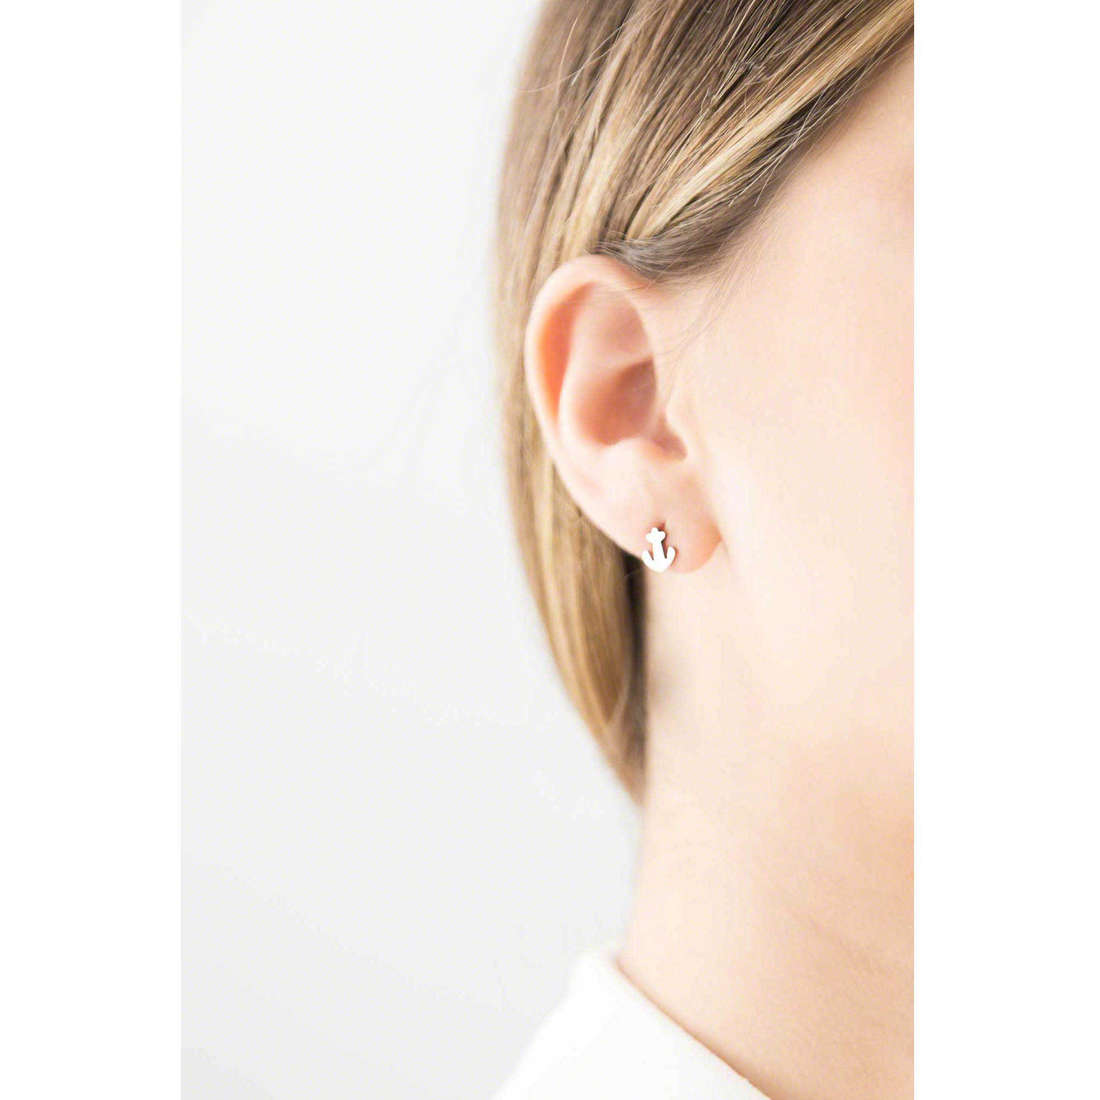 Marlù boucles d'oreille My infinity femme 18OR010 indosso